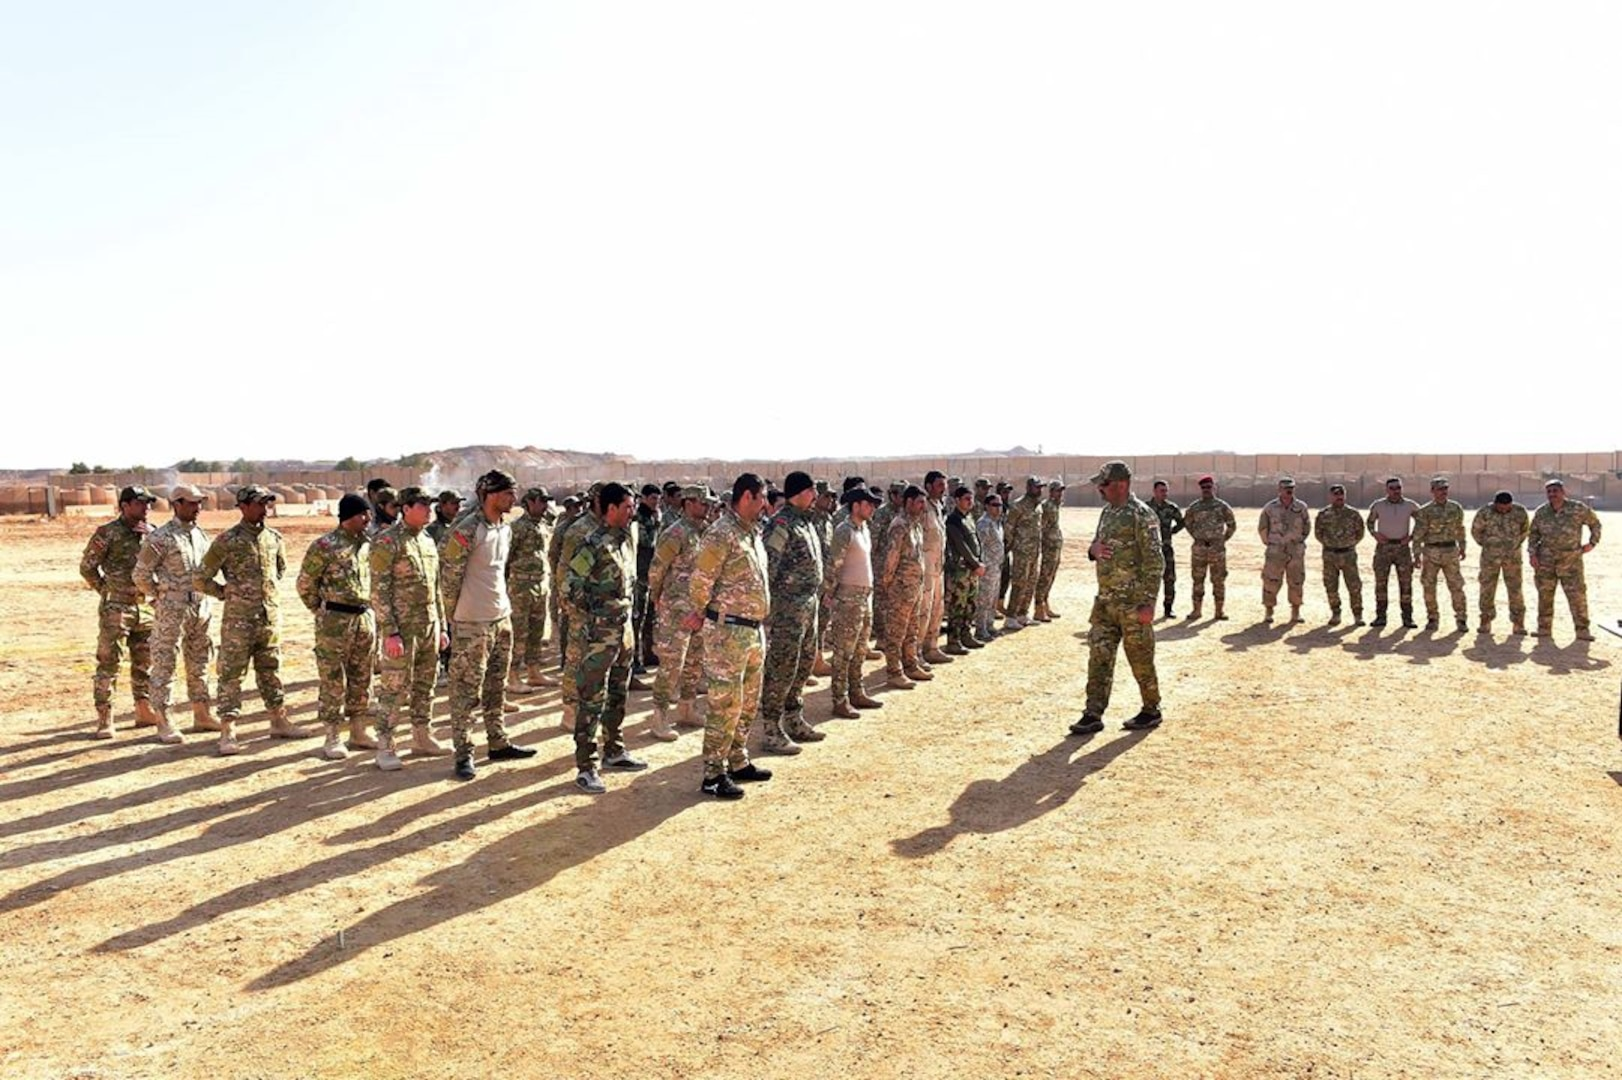 Col. Mohammad Hami Moussa, an Iraqi commander, inspects the first graduating company of a unique, multi-tribe Iraqi force, the A'ali Al Furat Brigade, at a training ground in Western Iraq, Jan 7, 2017. The A'ali Al Furat Brigade, which has nearly 200 fighters from more than 20 tribes - the first multi-tribe unit formed in Iraq, is the first recorded tribal unit to receive Law of Armed Conflict and rules of engagement training specifically from a U.S. military Judge Advocate General through coordination with Coalition partners. CJTF-OIR is the global Coalition to defeat ISIS in Iraq and Syria.